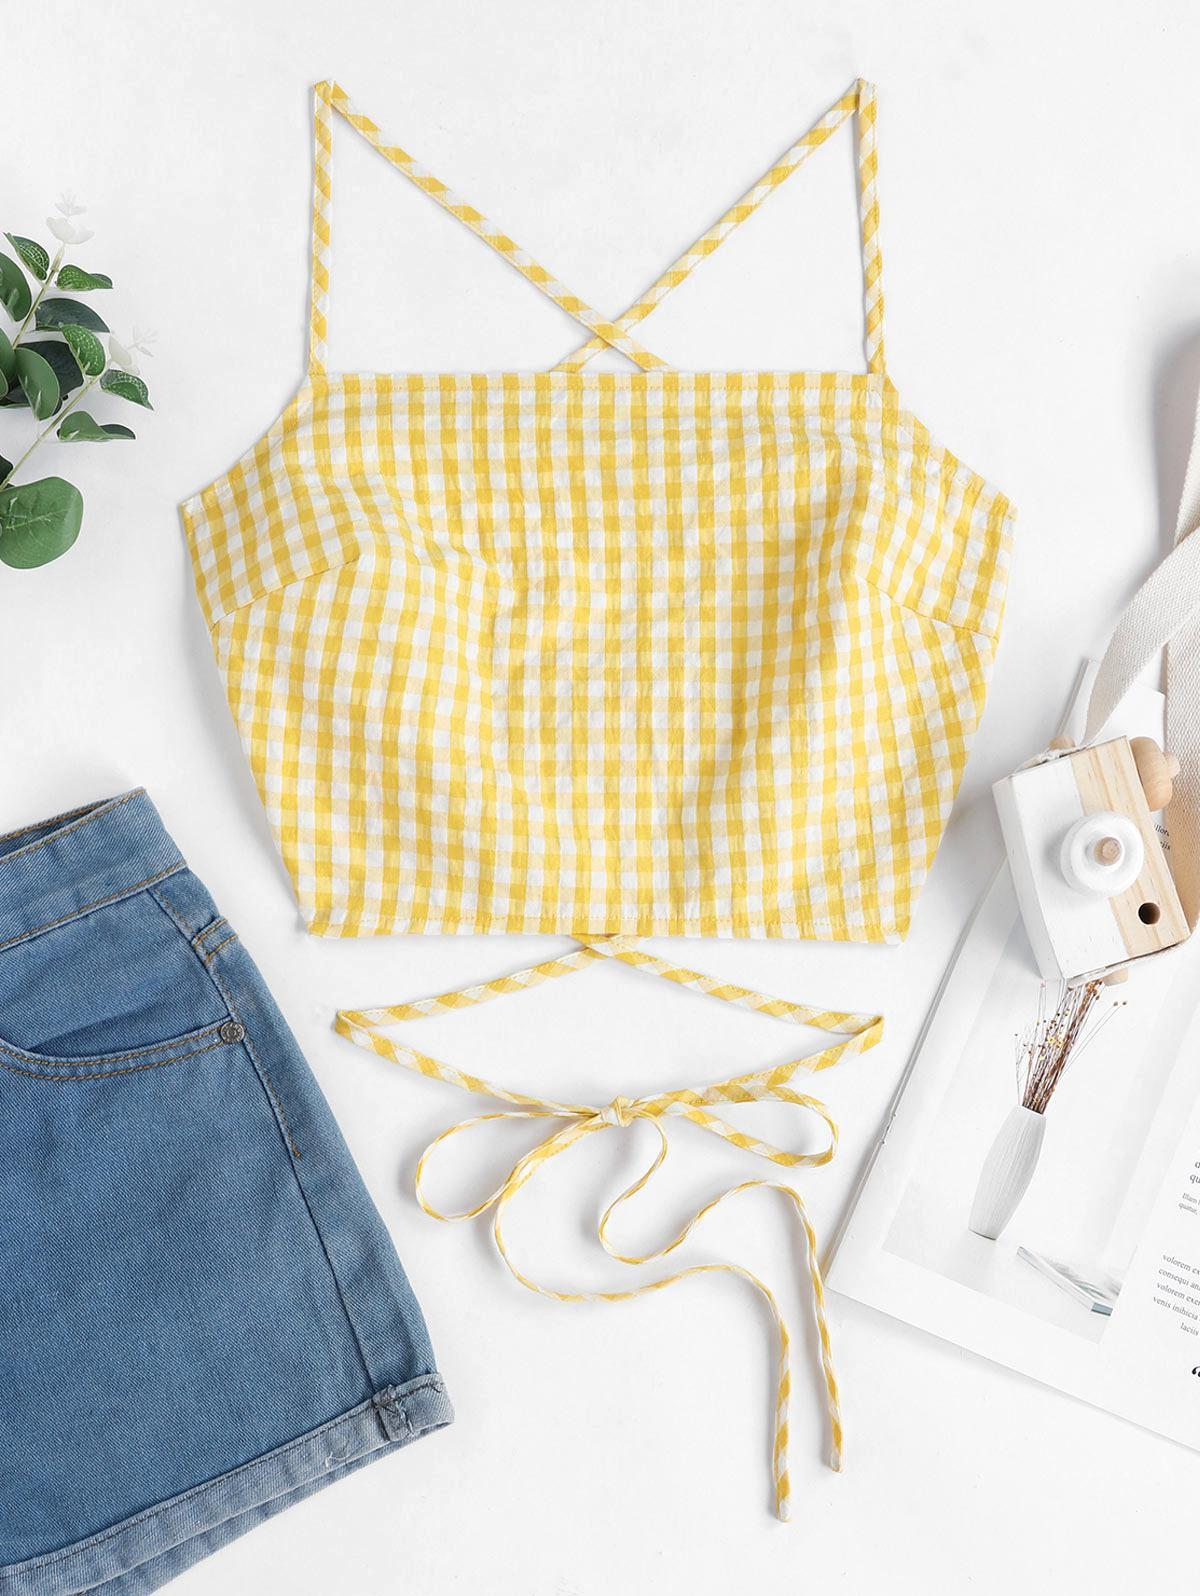 ZAFUL Criss Cross Lace Up Gingham Cami Top